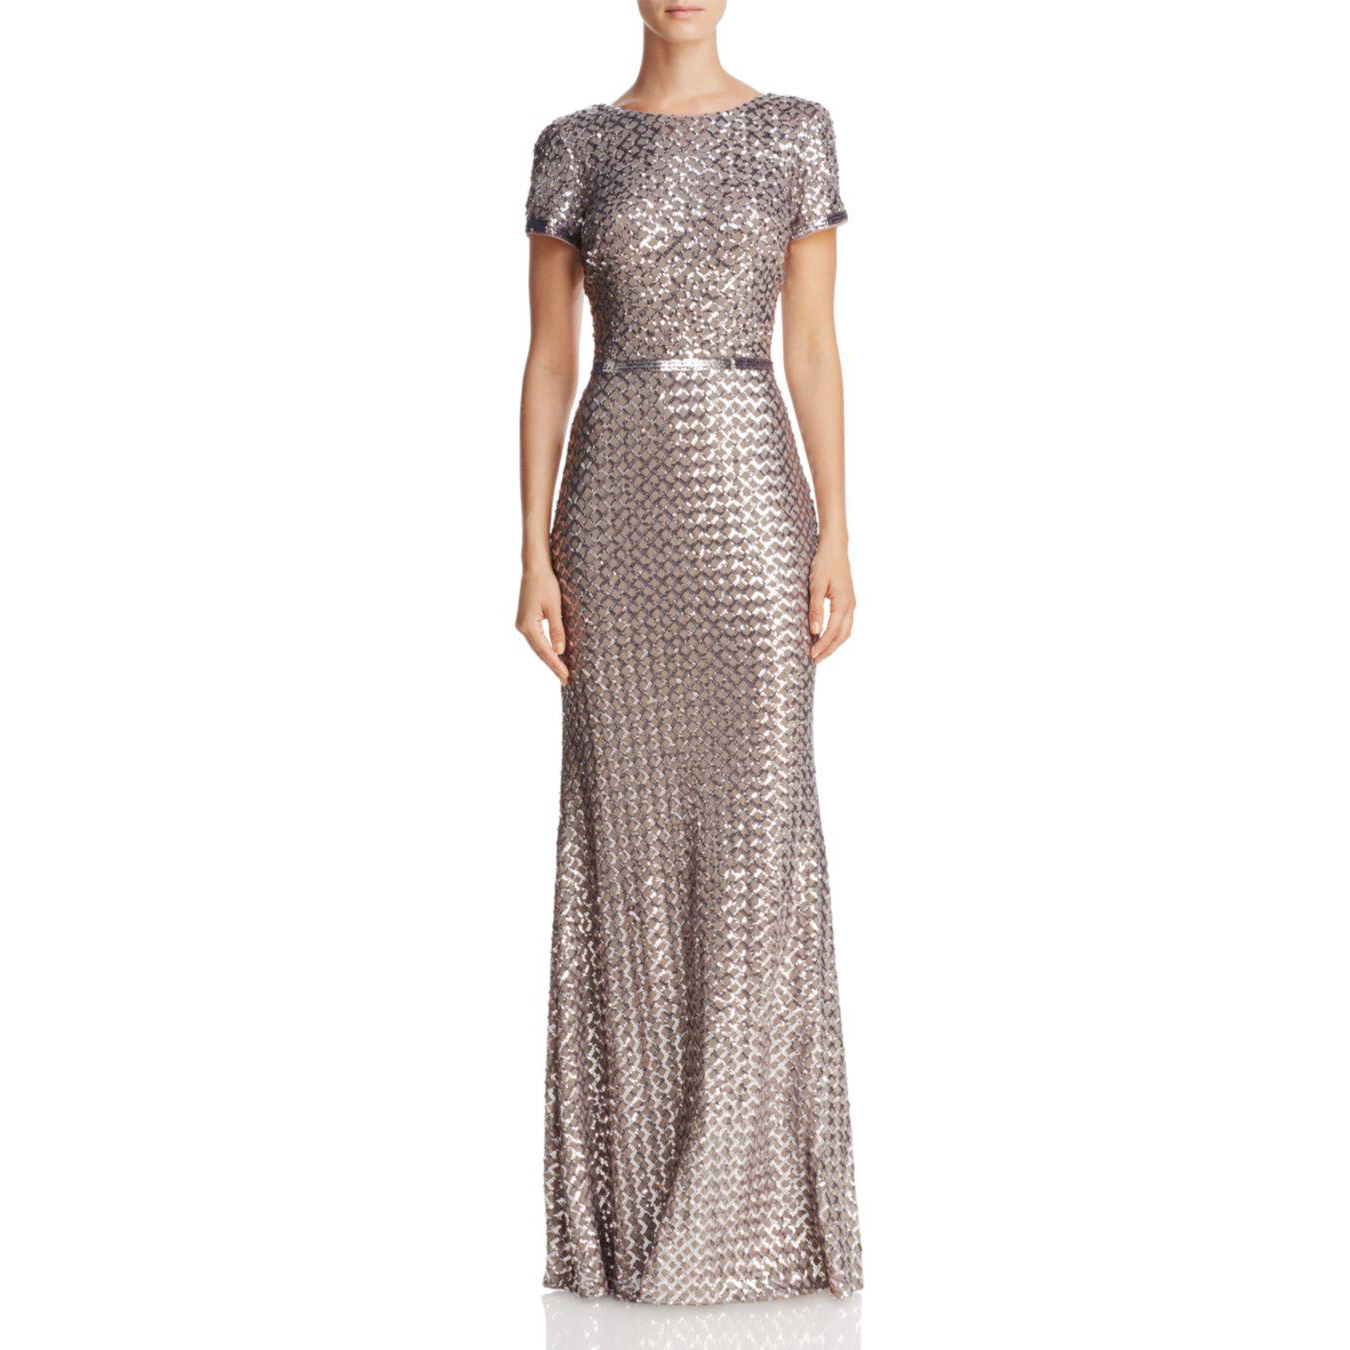 colorful wedding gowns Aqua Belted Sequin Gown bloomingdales photo